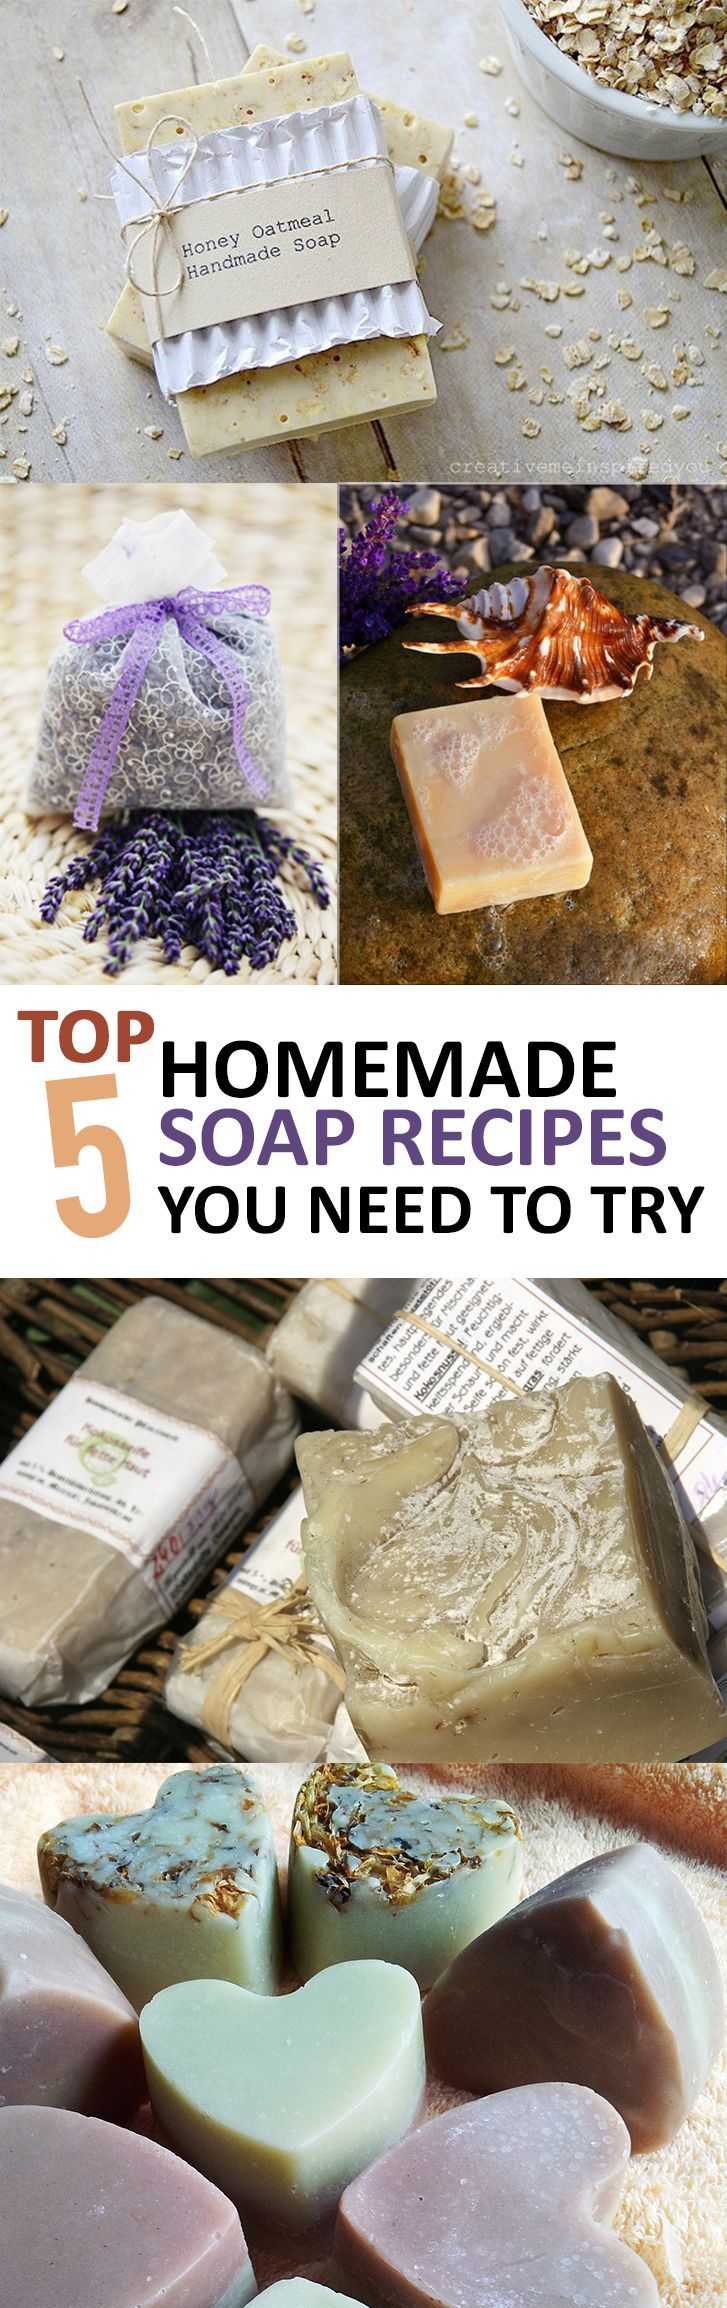 25 unique homemade home decor ideas on pinterest Diy homemade soap recipe